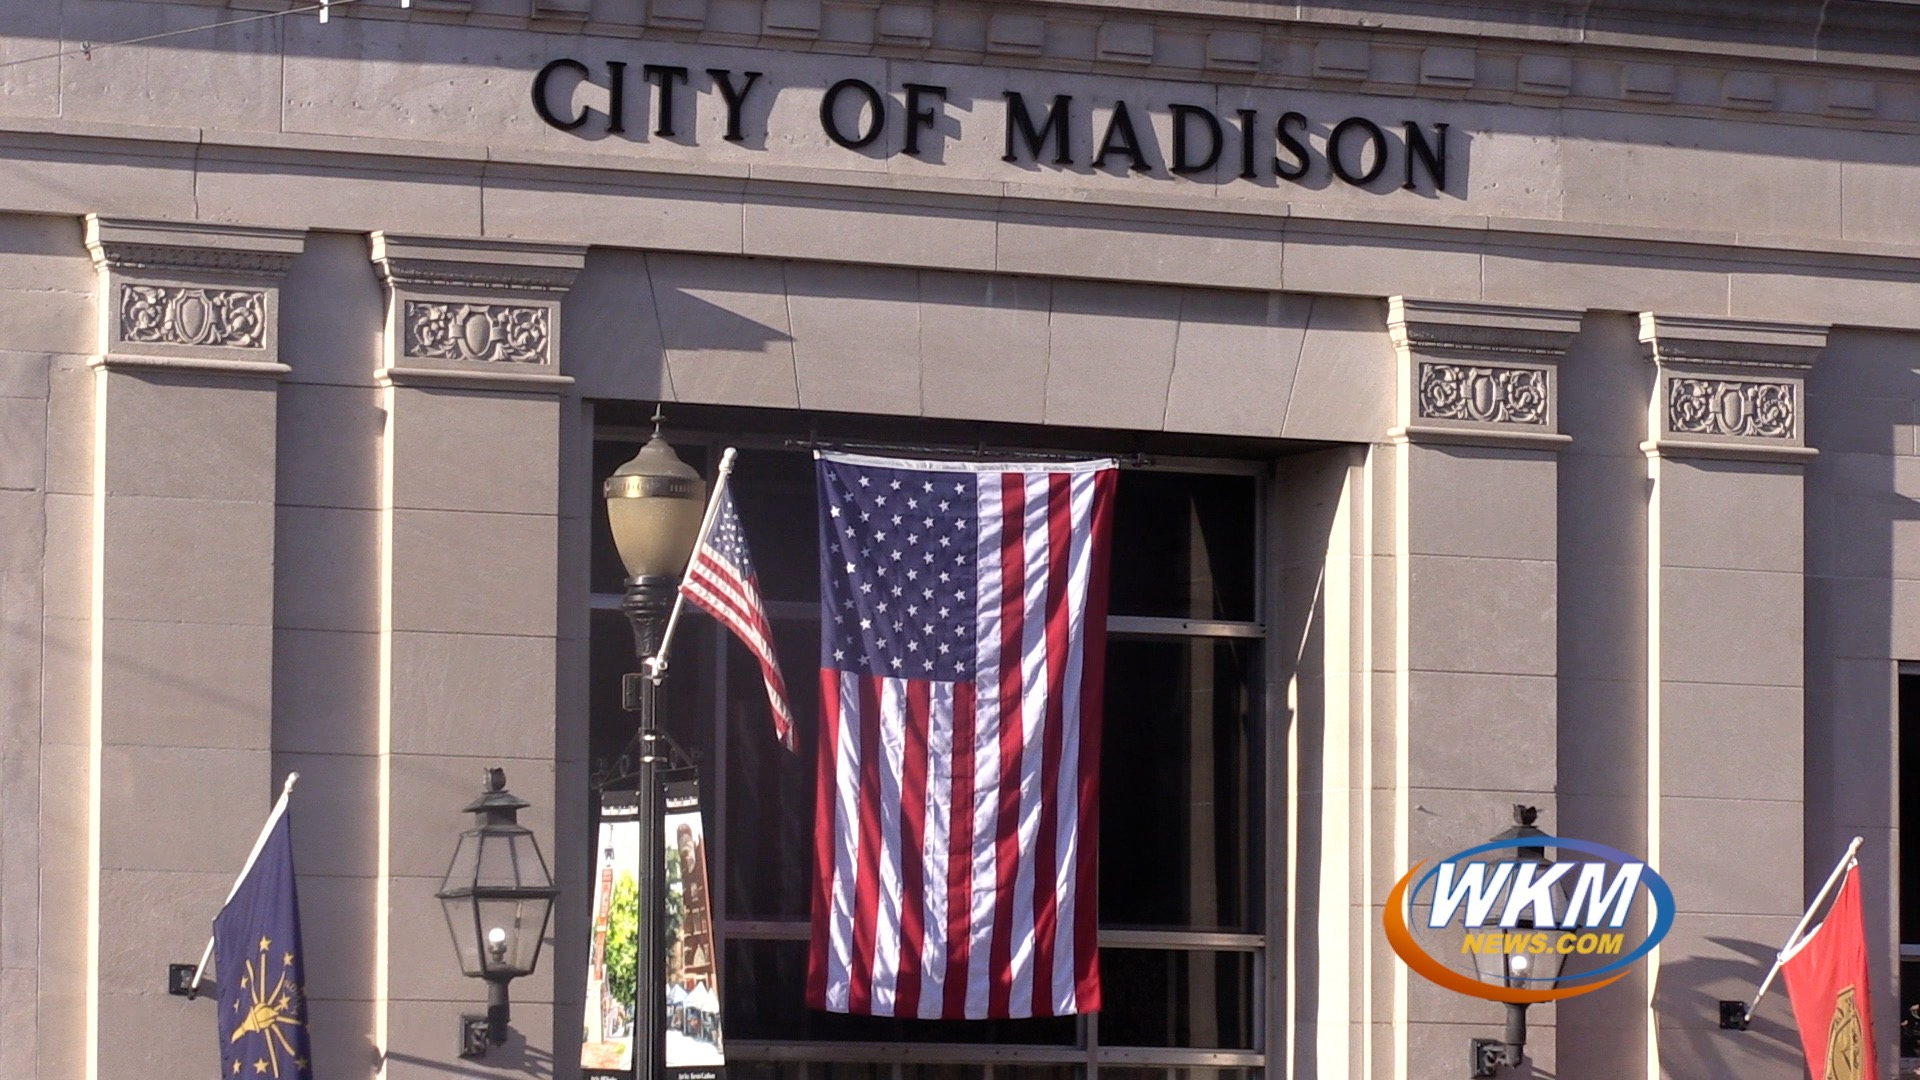 2022 Budget Approved By Madison City Council